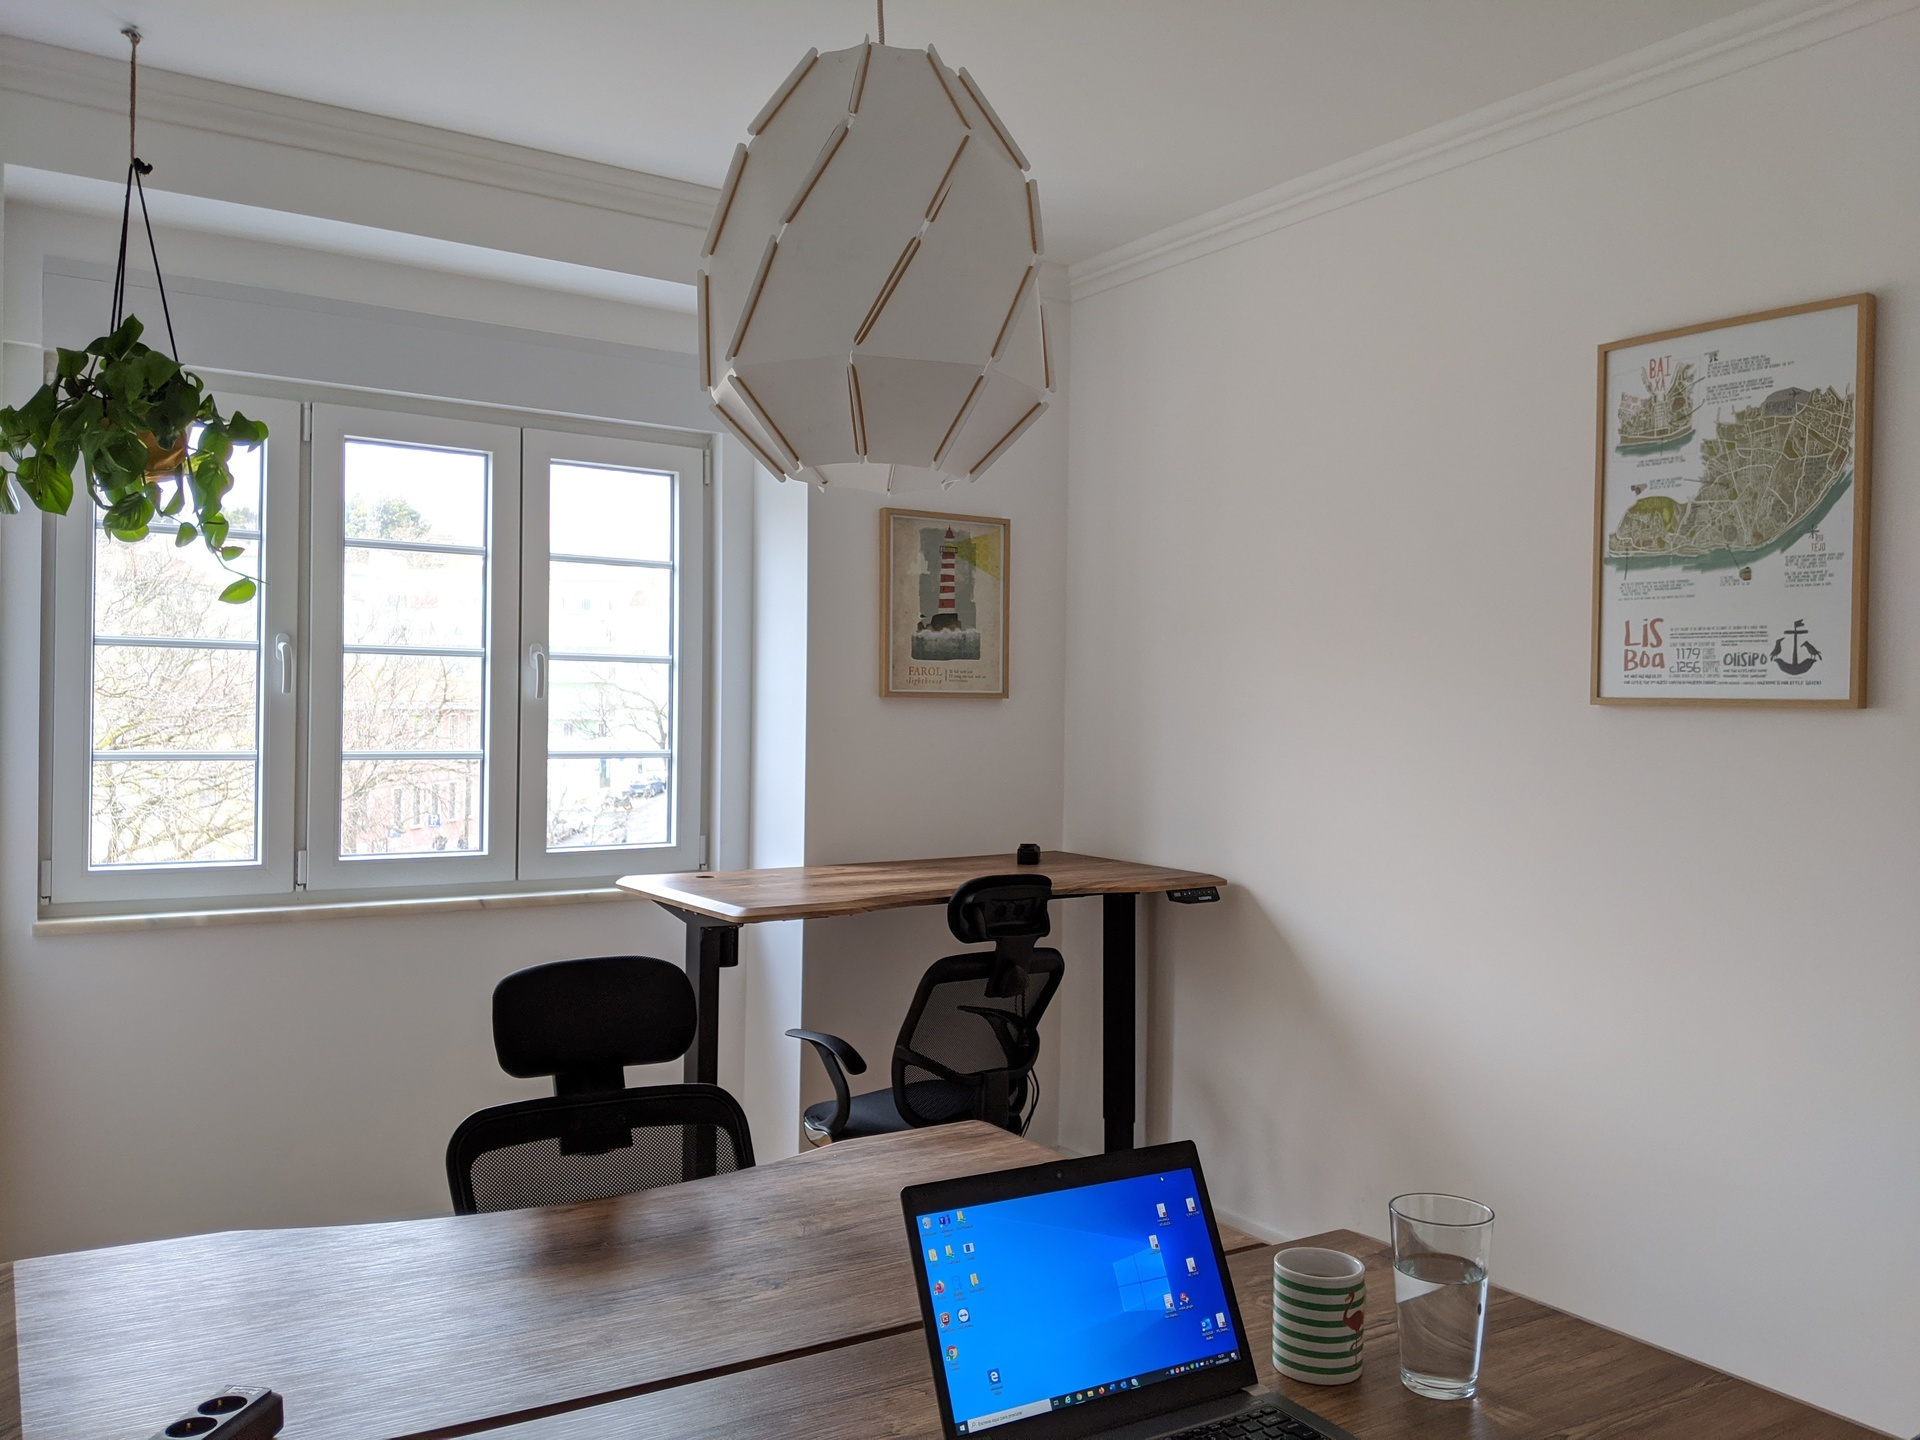 Small room, with three desks